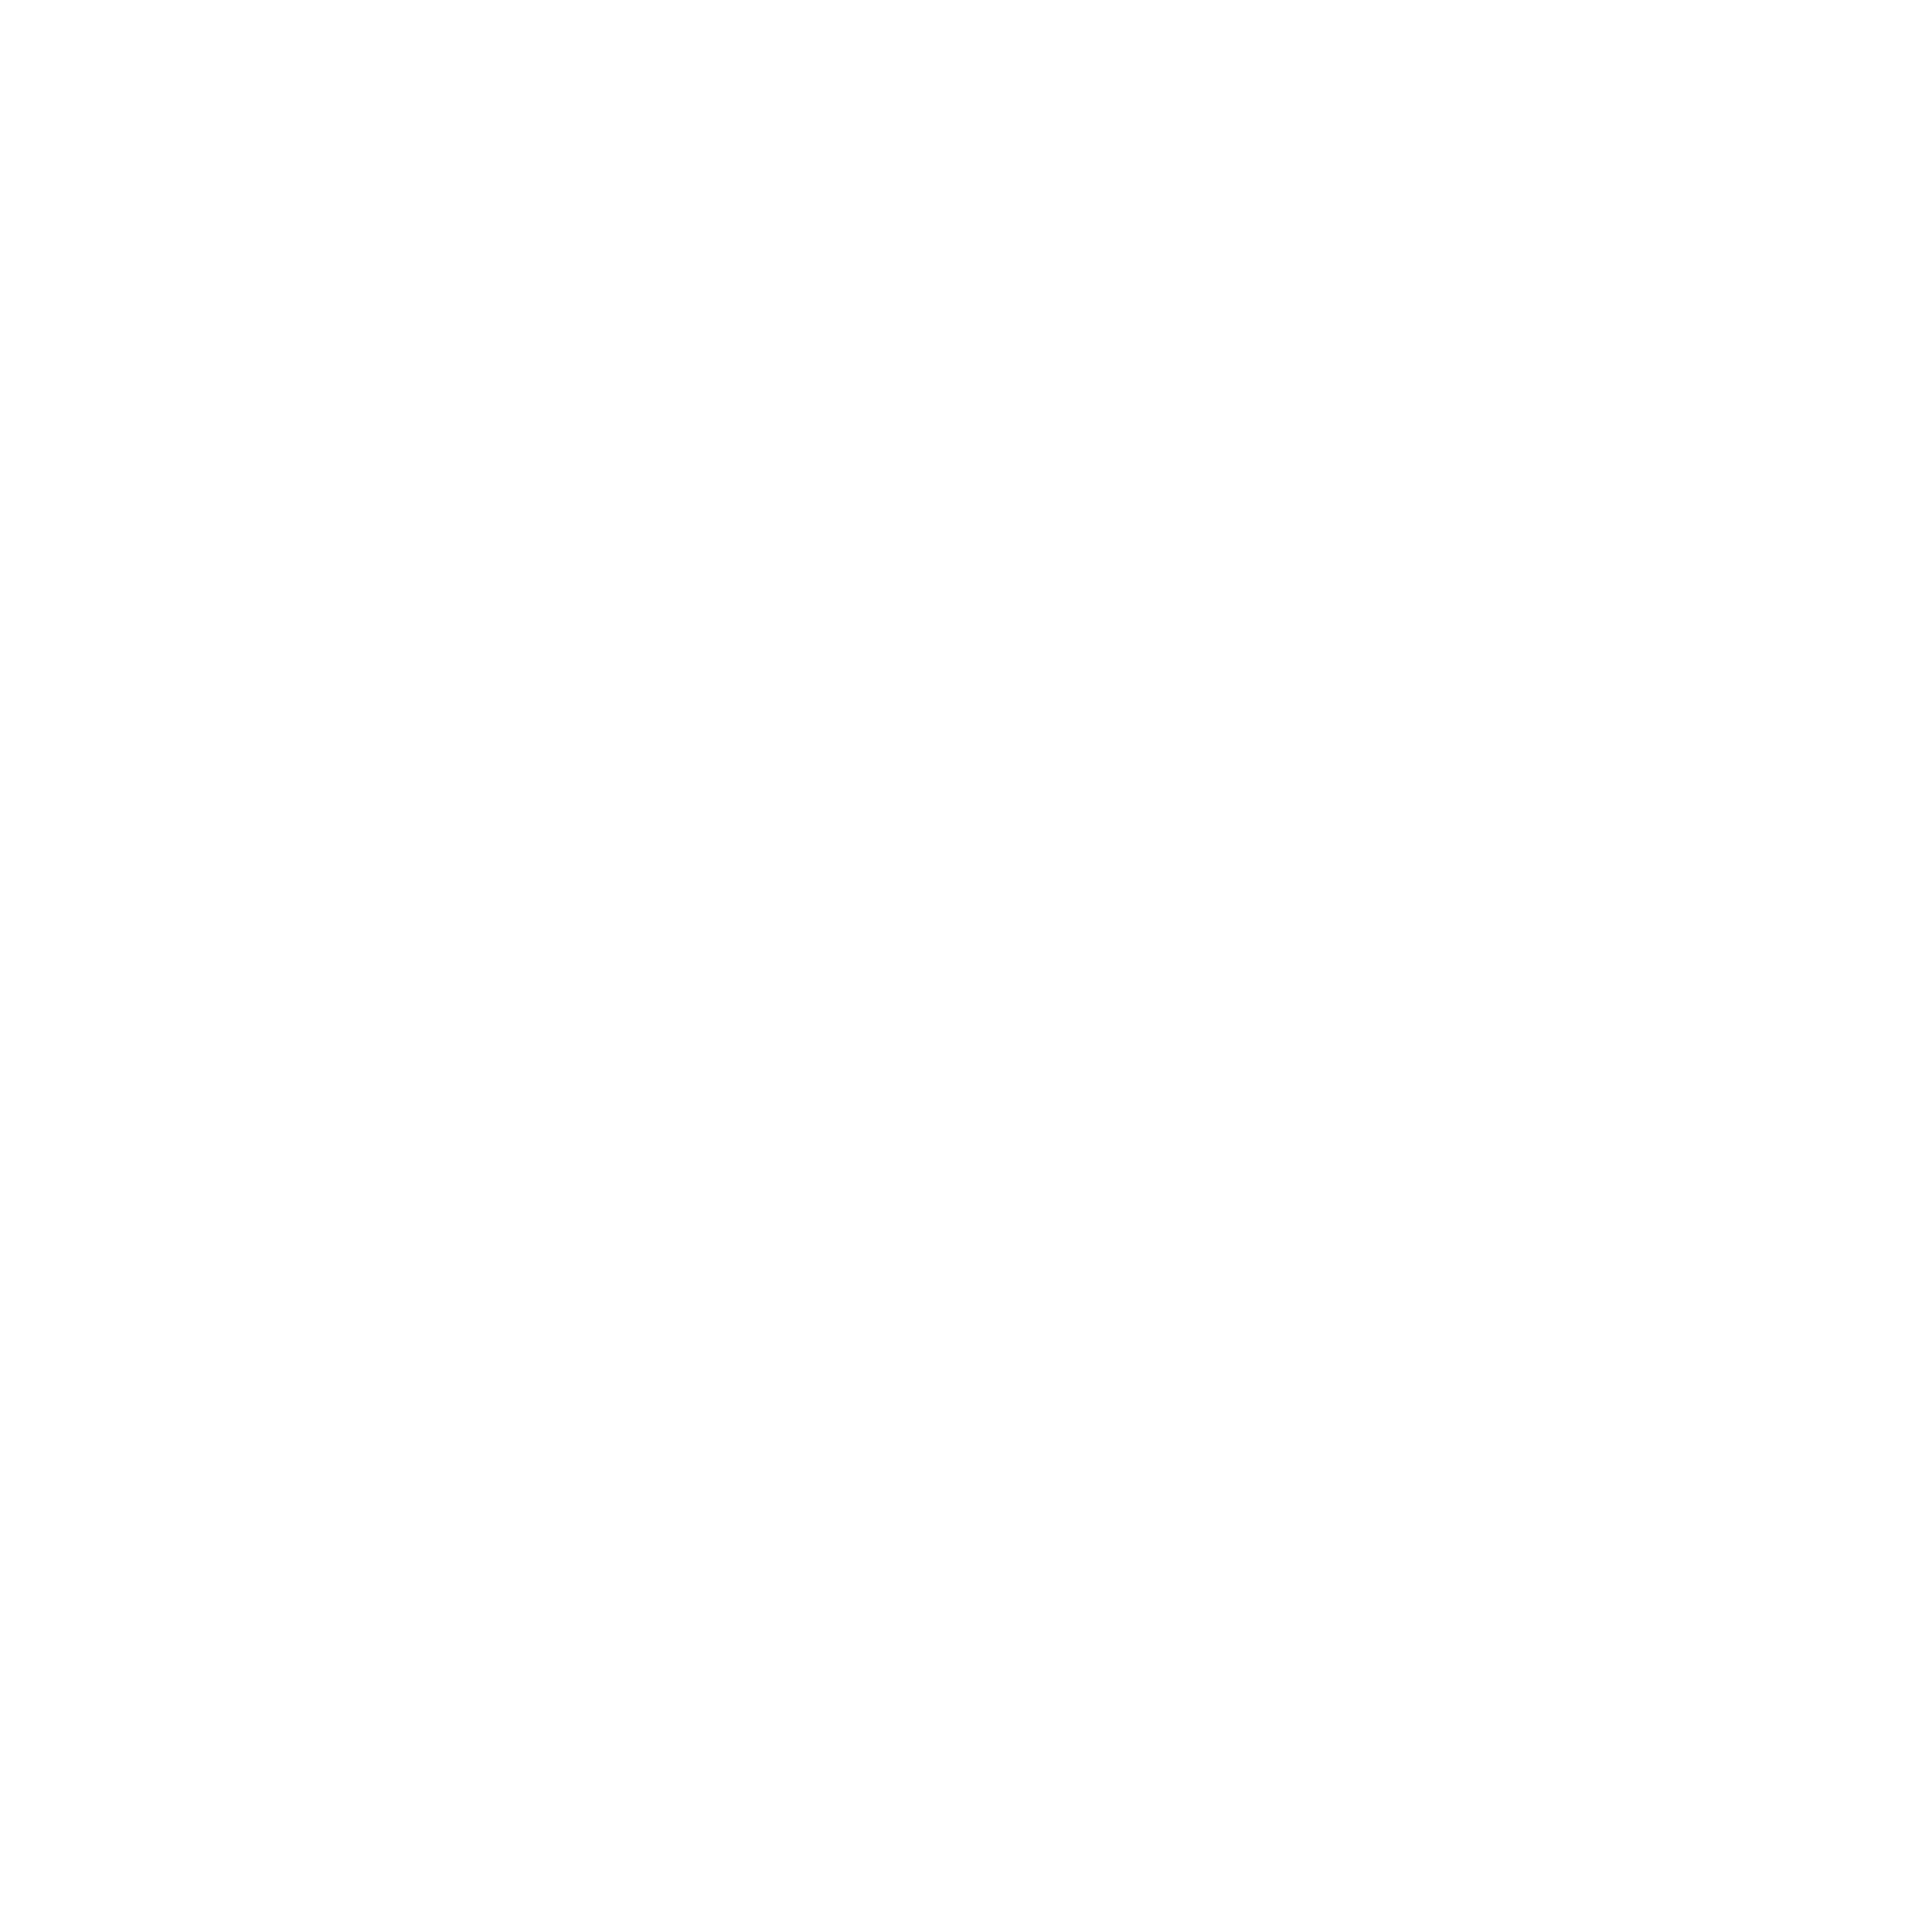 ConsciousCreation; symbol Conscious Creation; Consciousness Pioneers; Spiral Circum point  ;